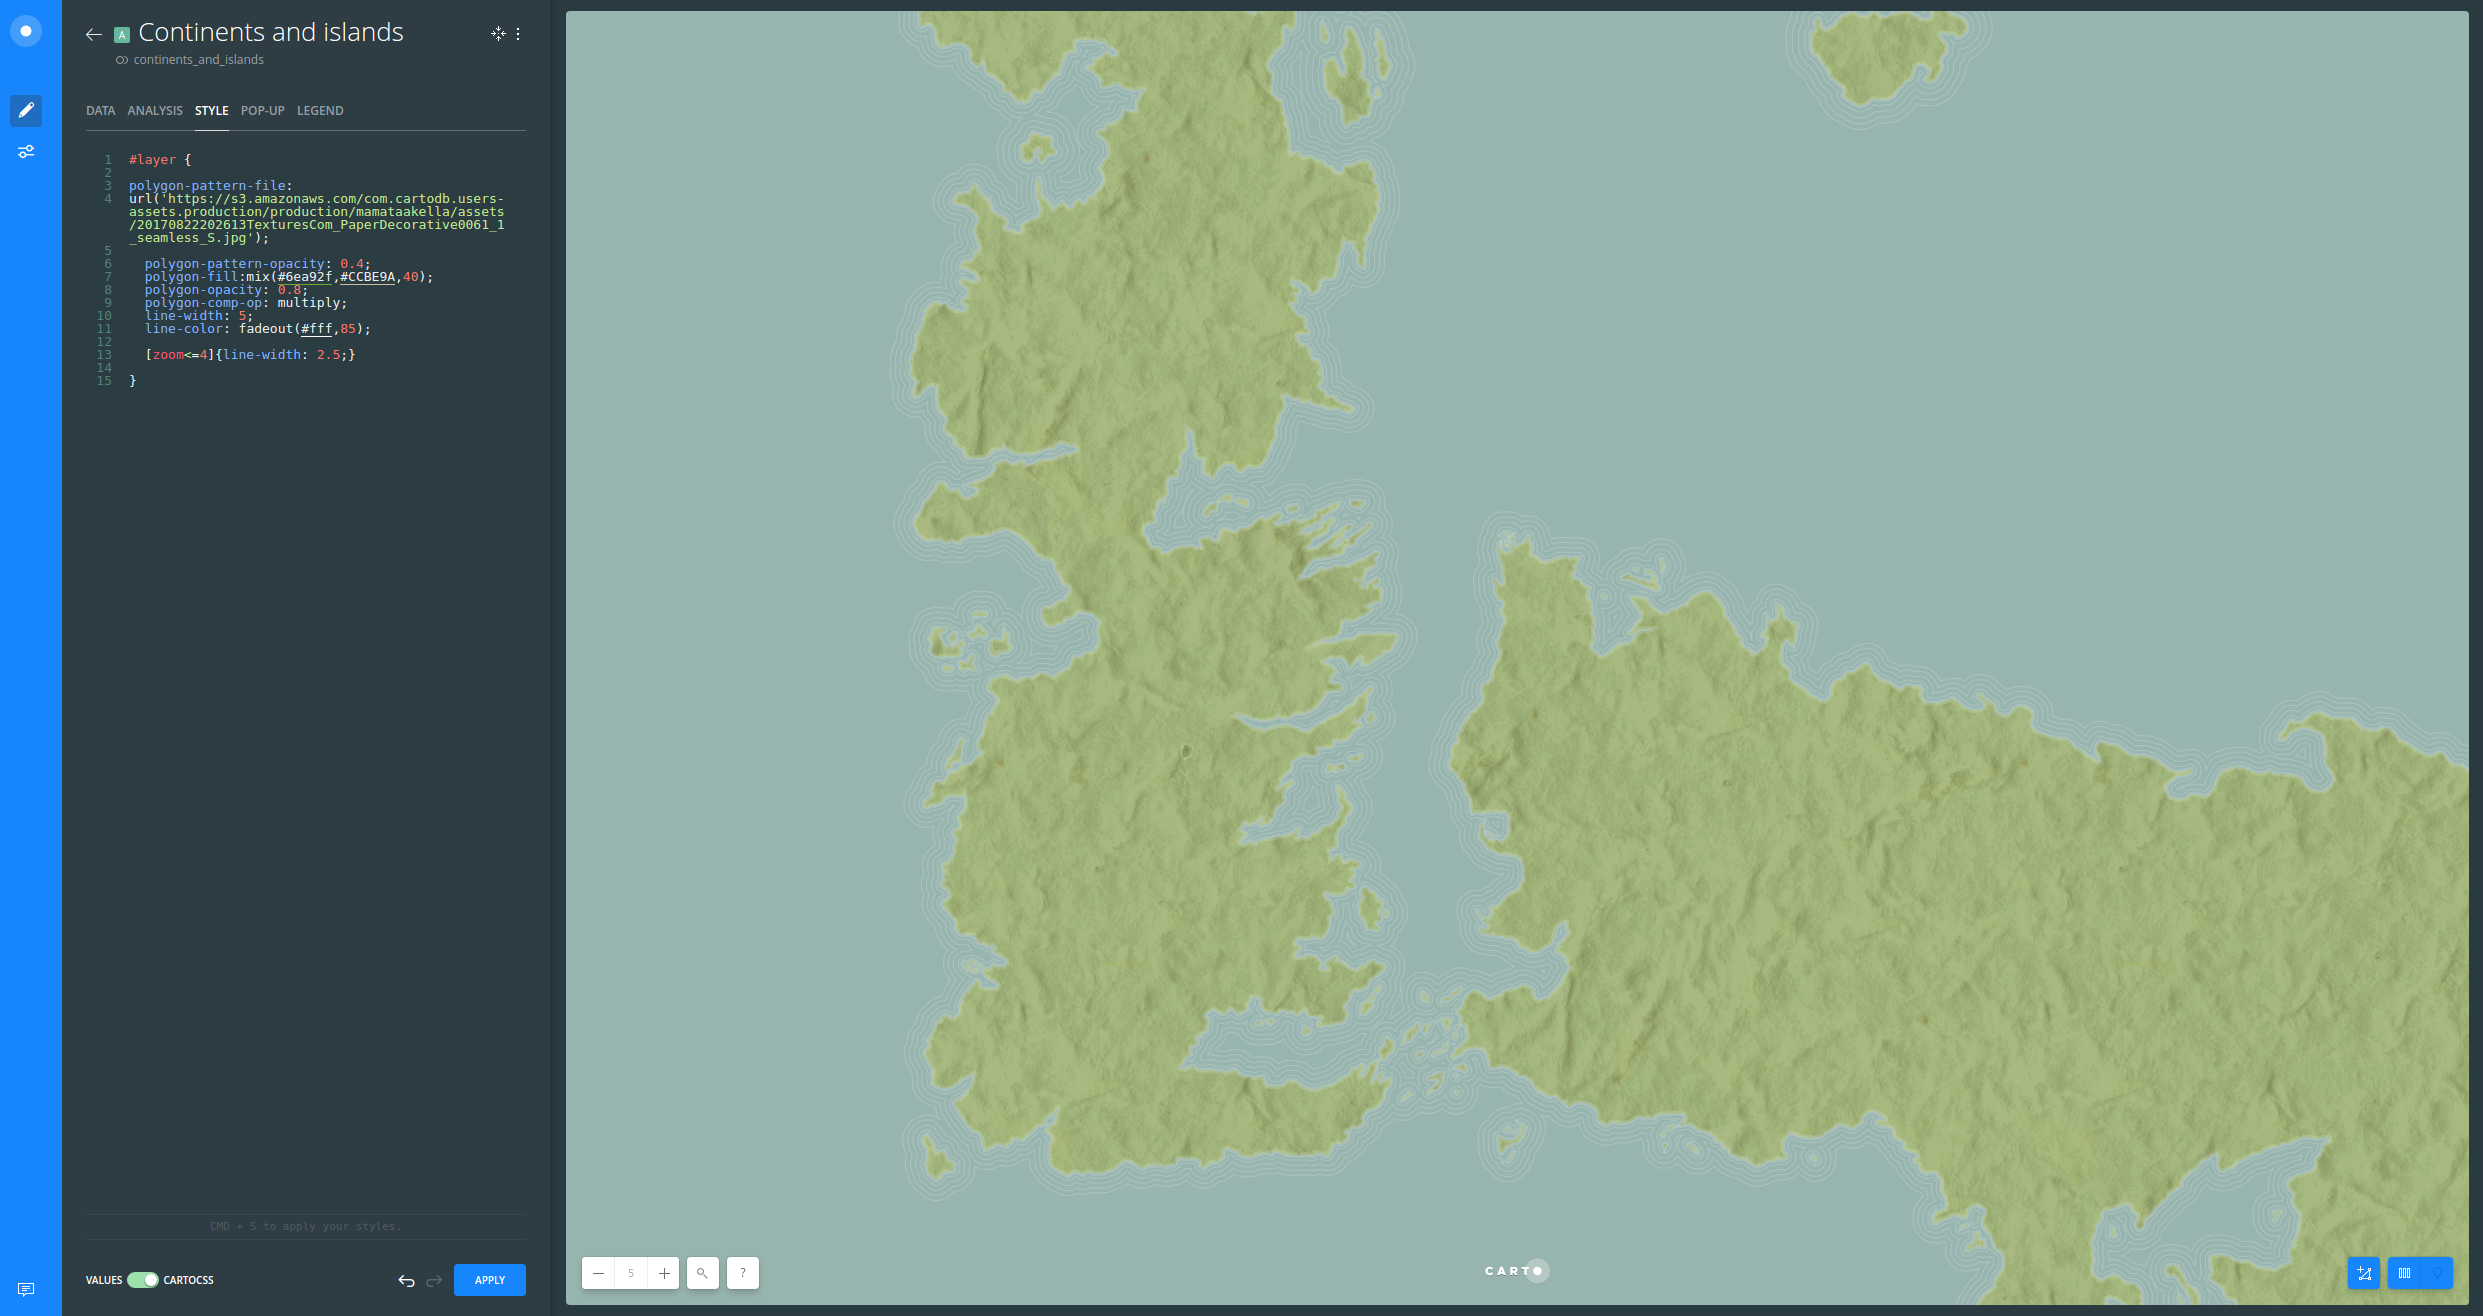 Example - Building a Custom Basemap through Styling - Part 2